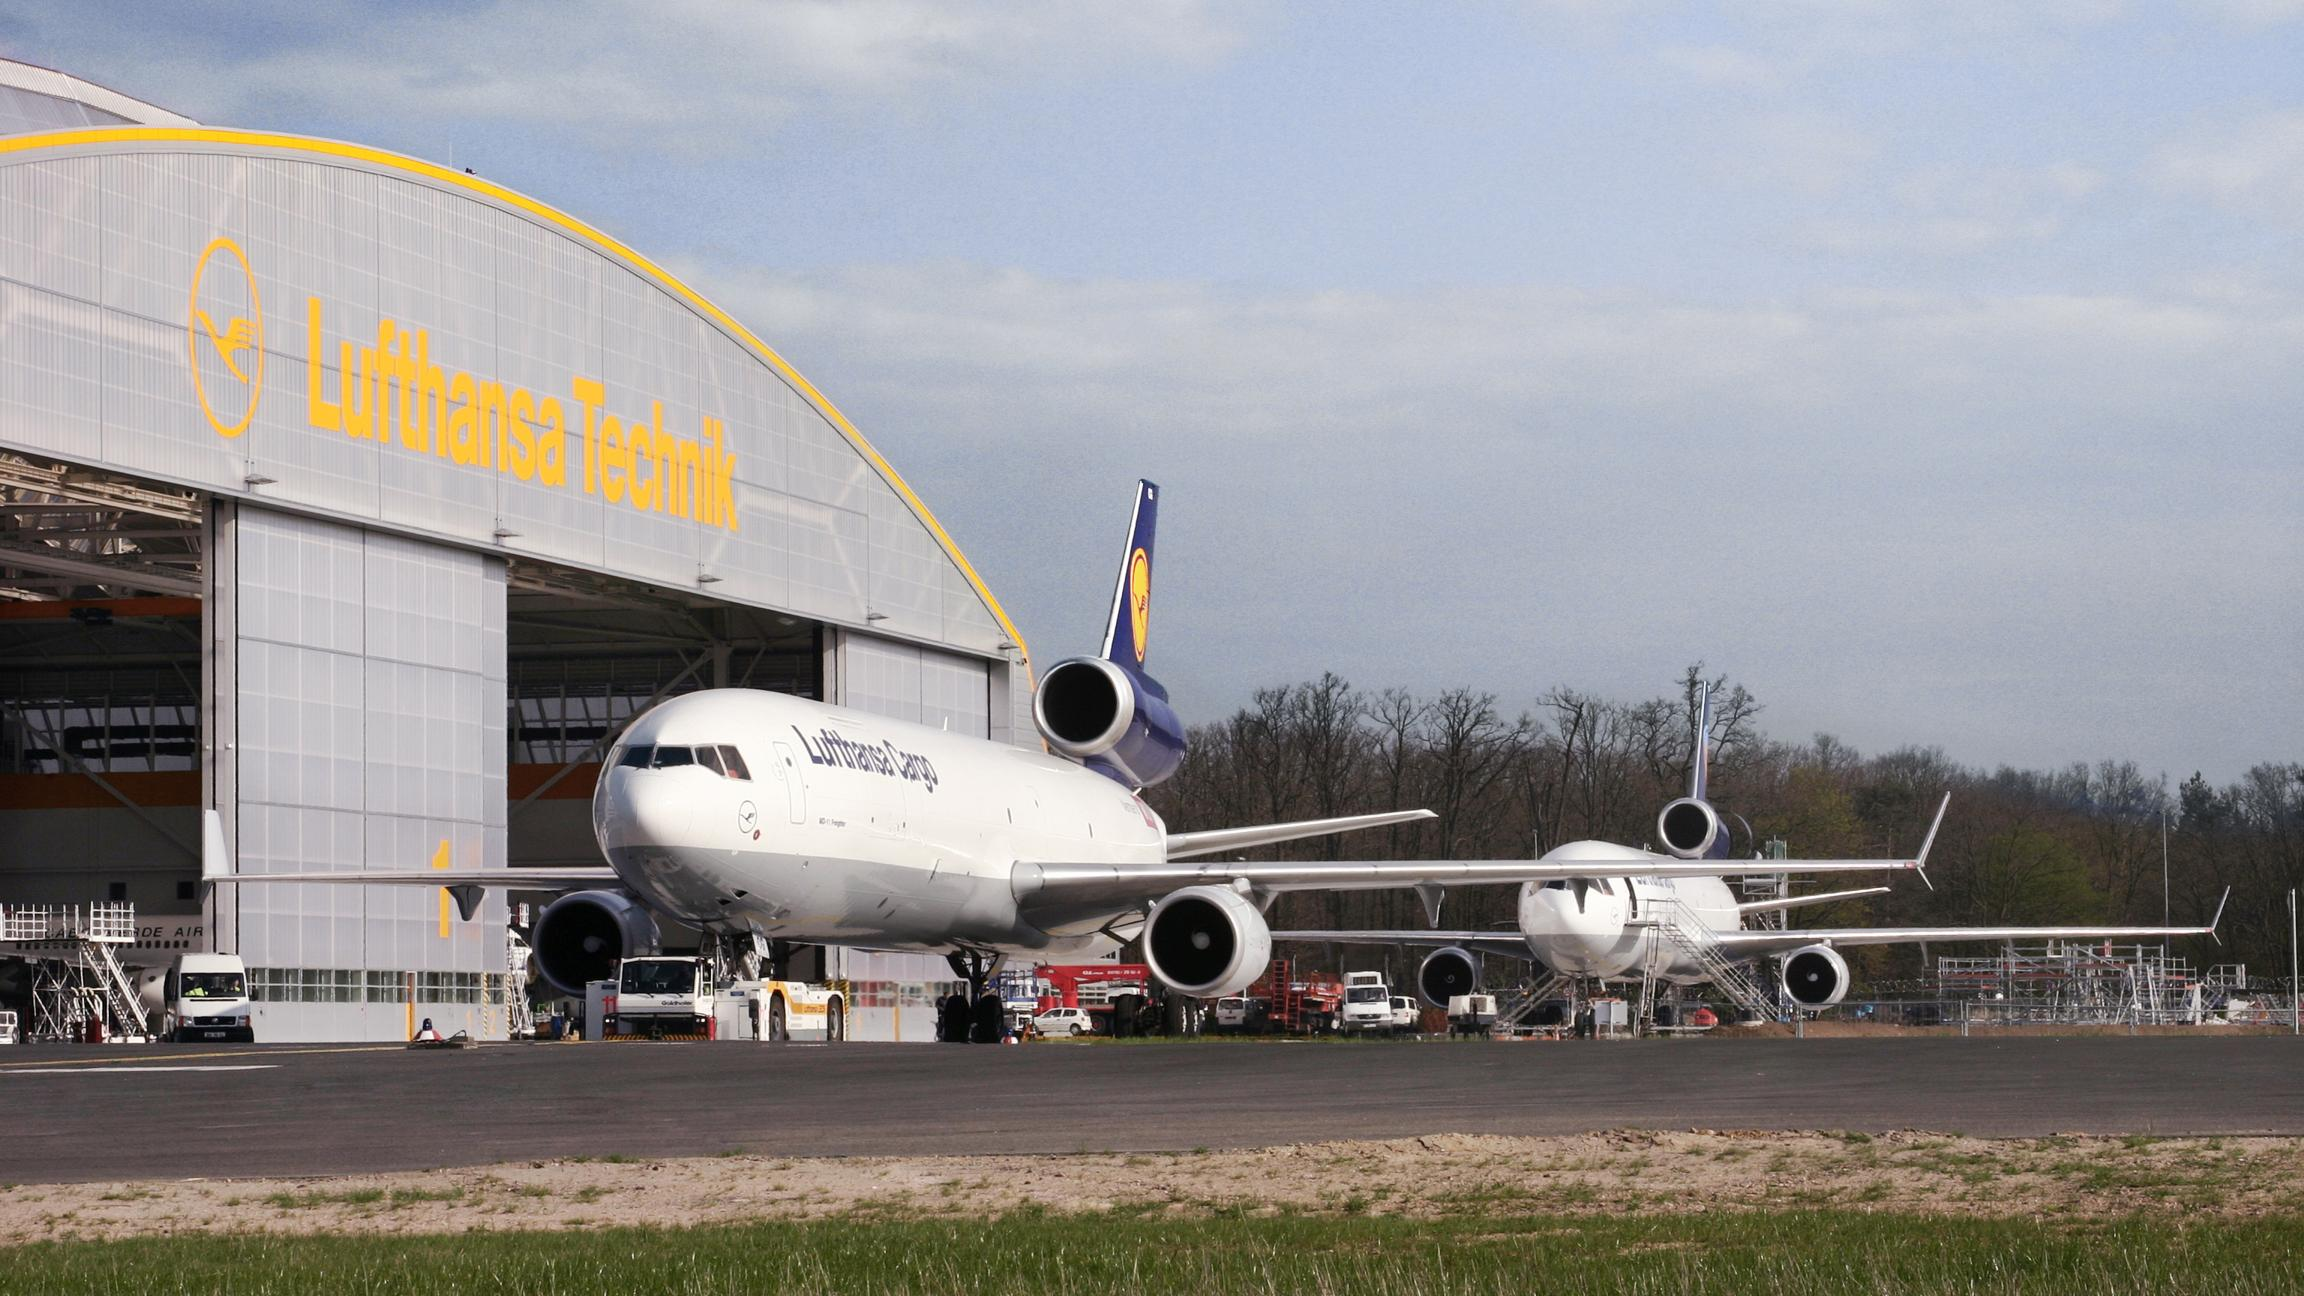 We love your MD11 aircraft, LH Cargo!